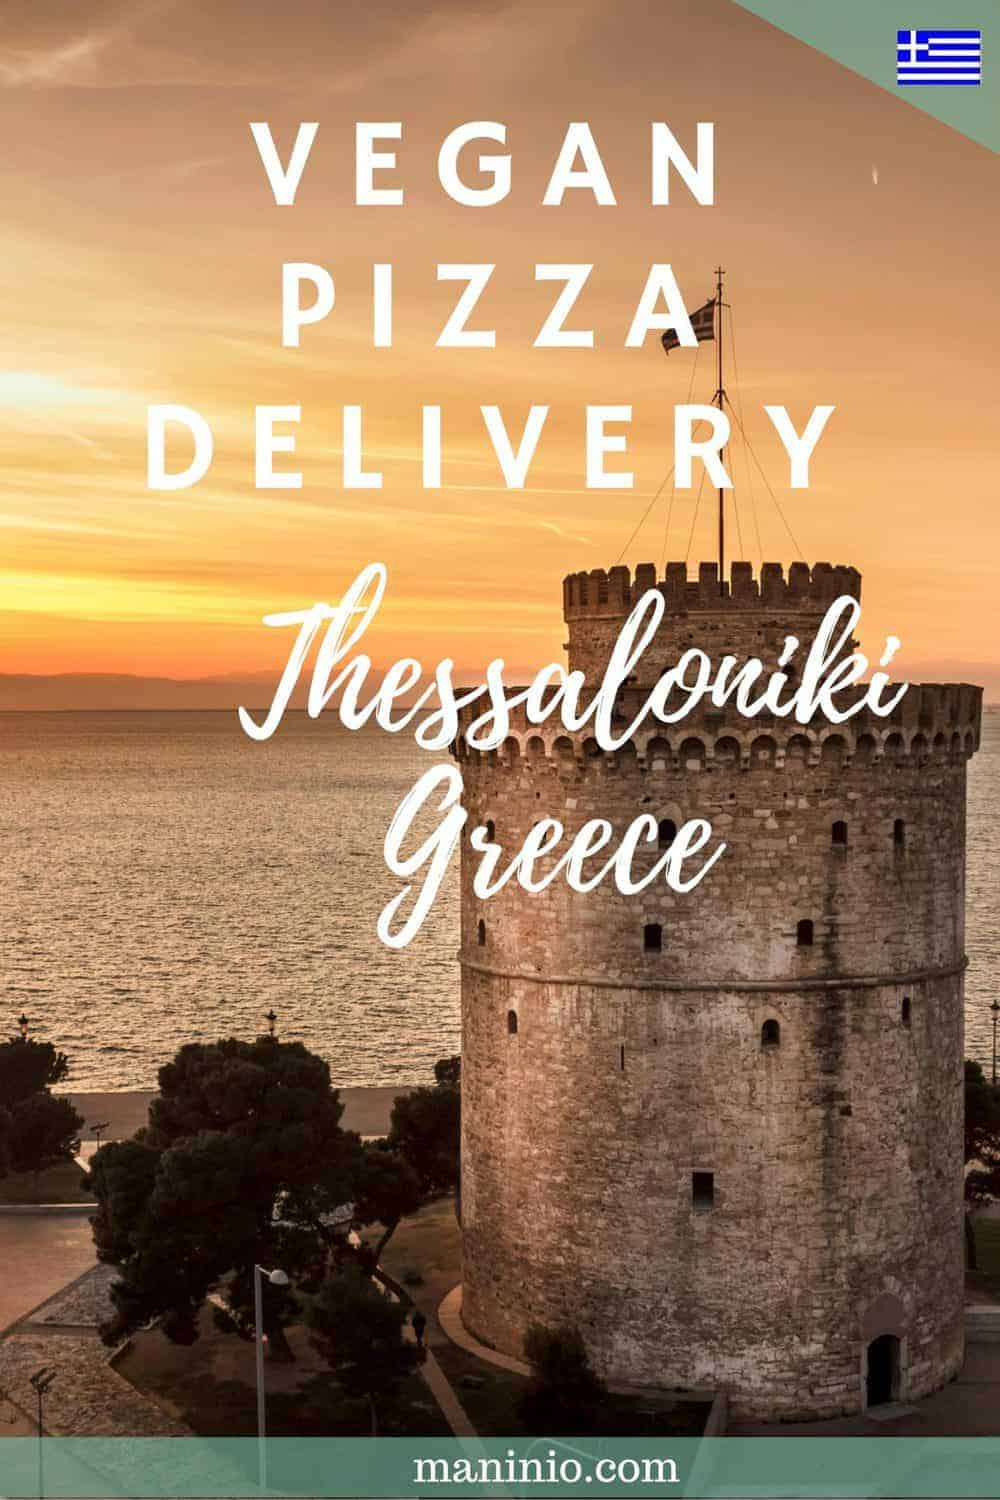 6 Vegan Pizza Delivery | Eats in Thessaloniki. maninio.com #vegandelivery #veganingreece